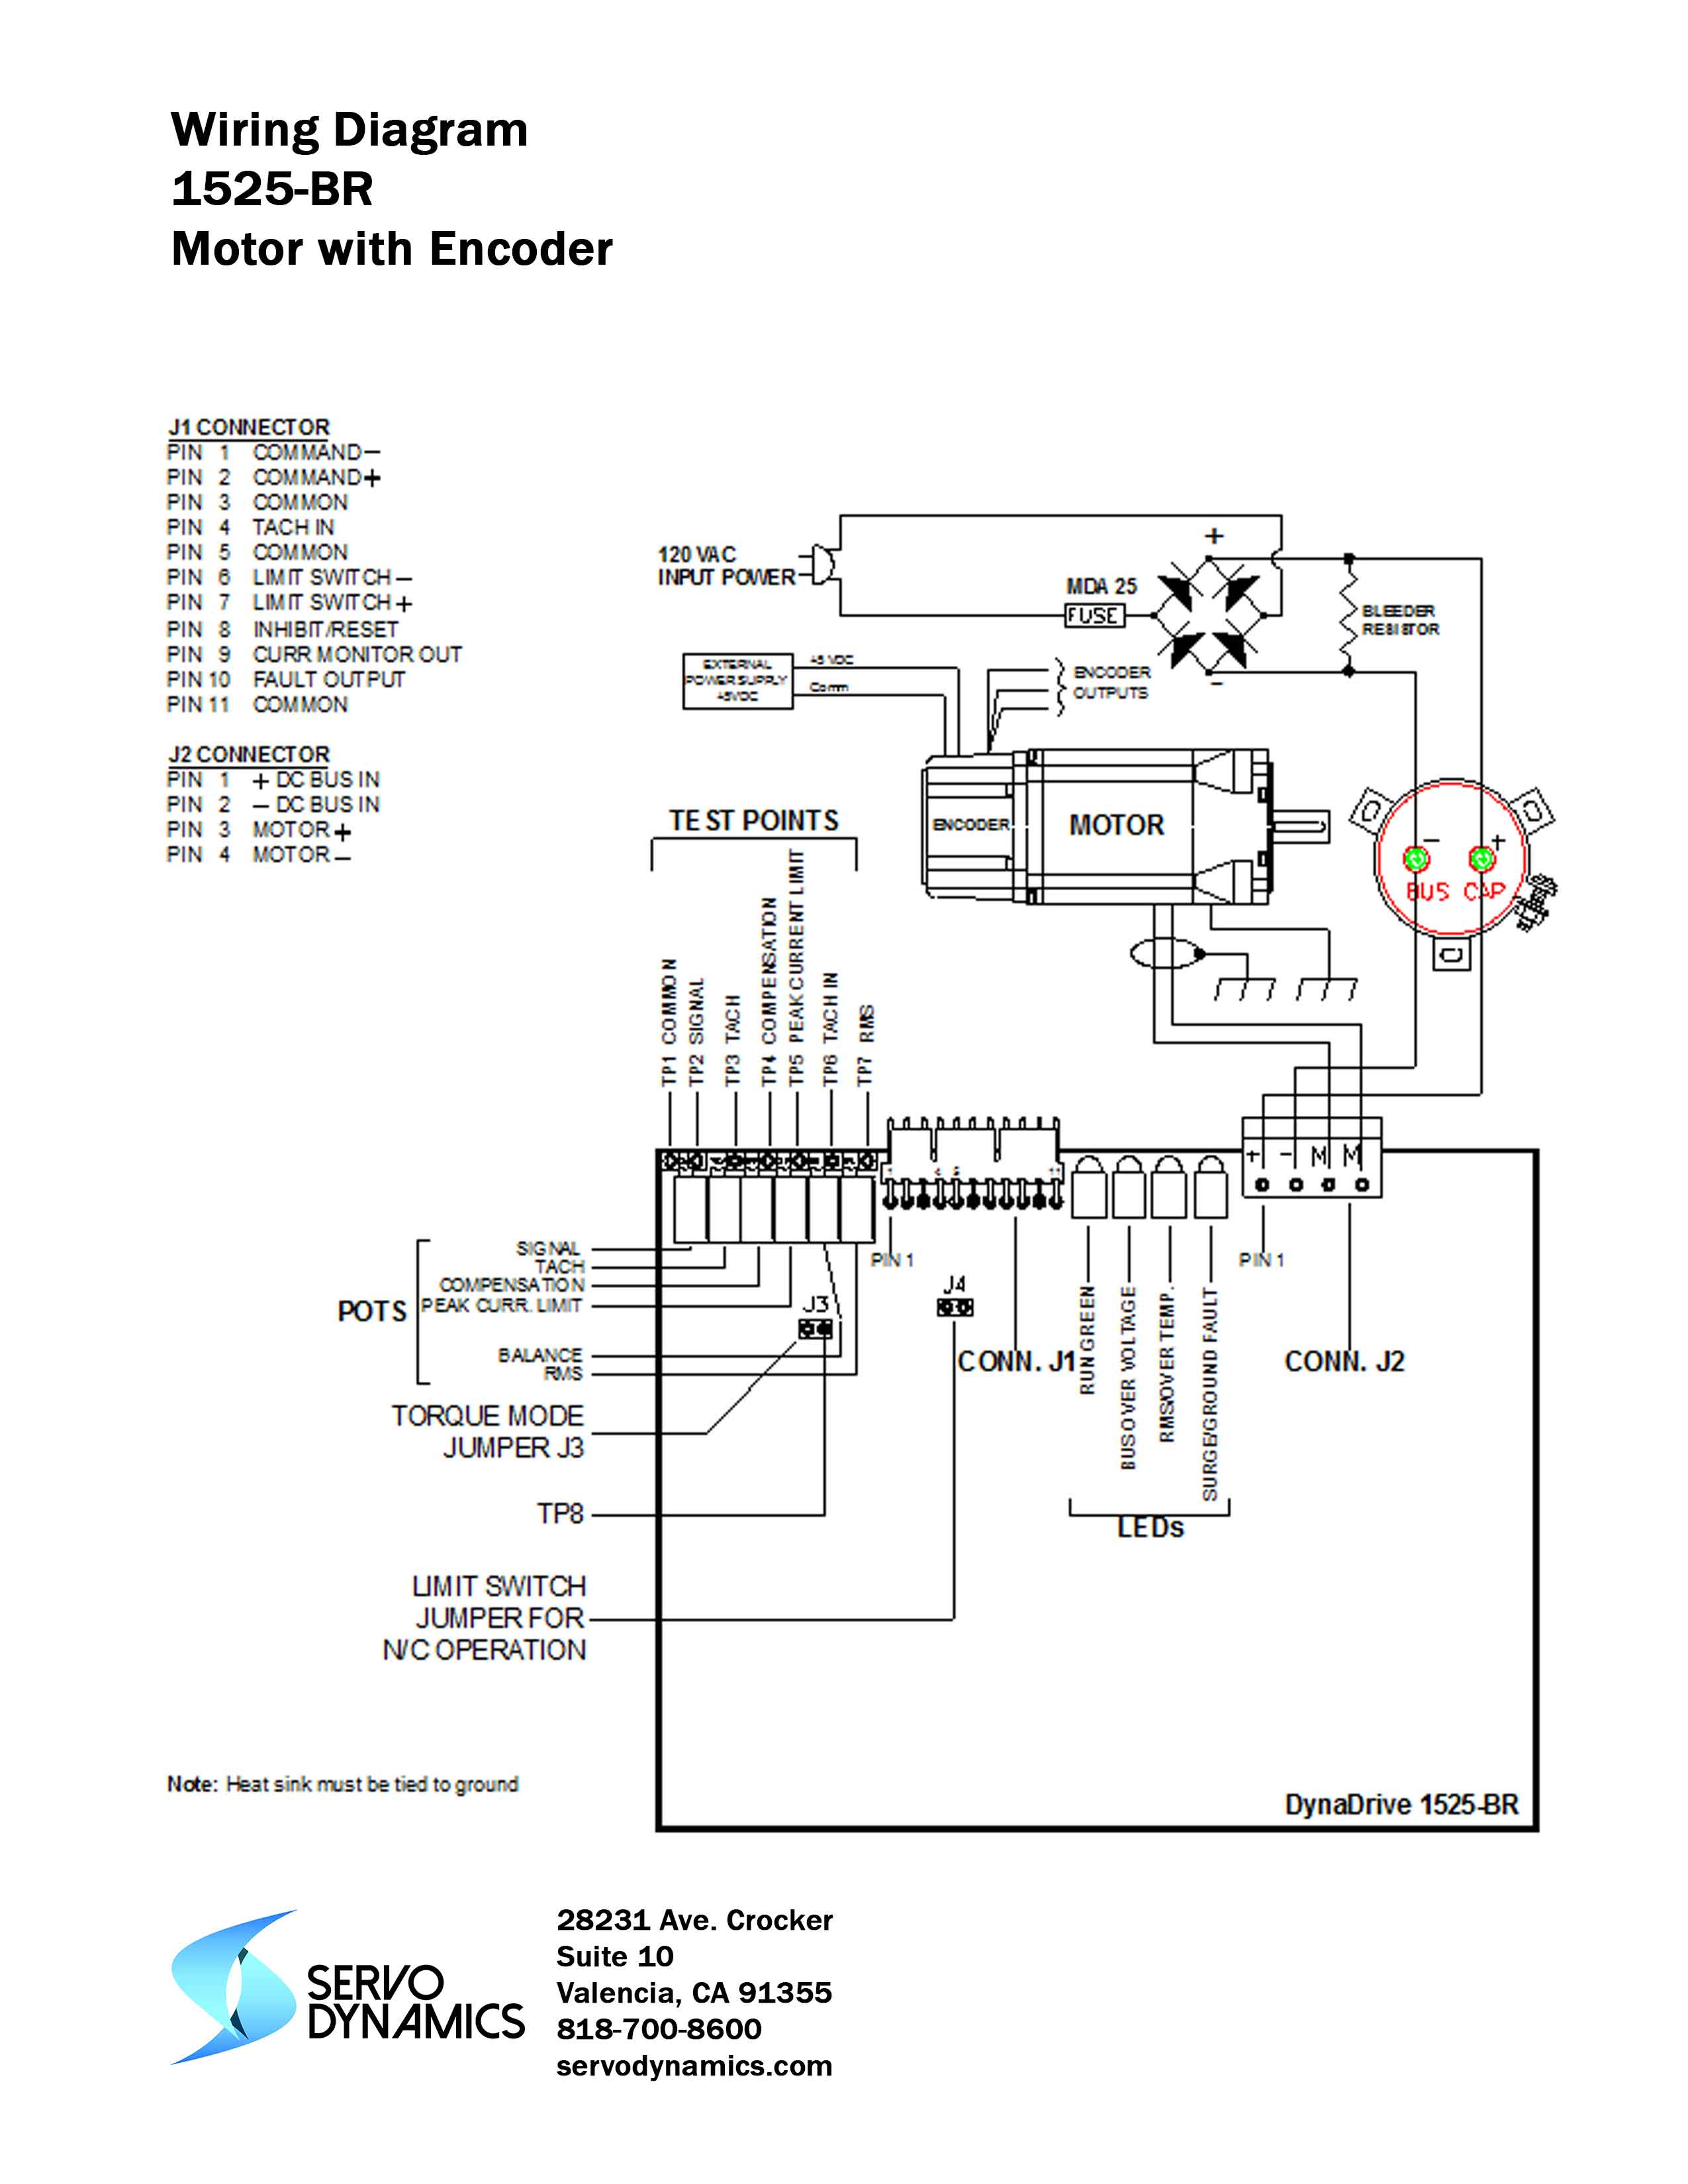 Wiring Diagrams For Electric Rc Airplanes Embroidery